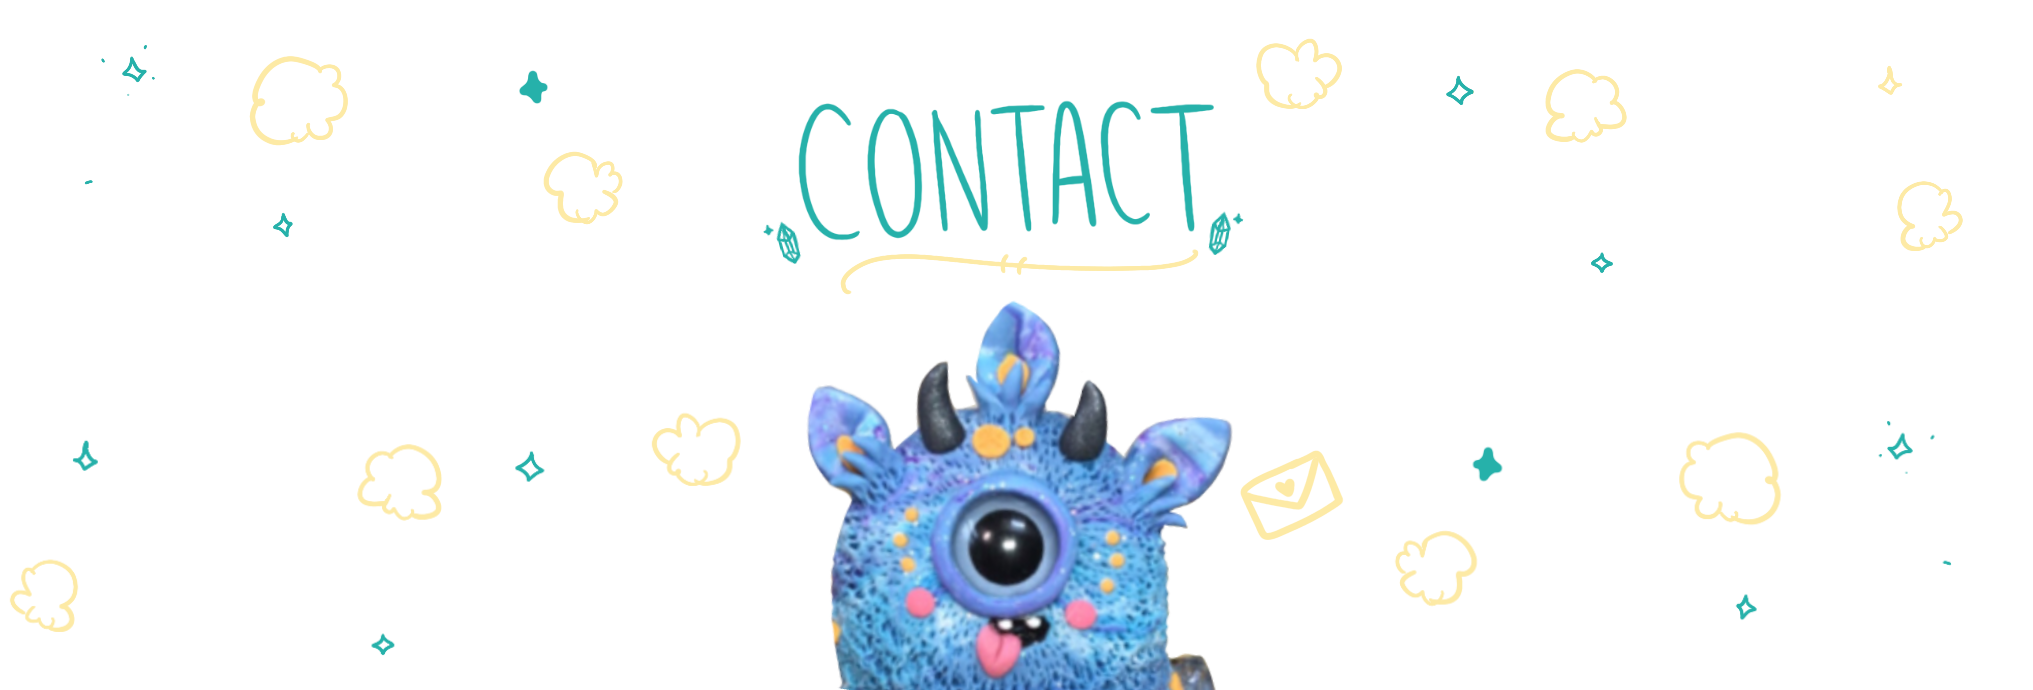 Contact image with Walter the weebeast